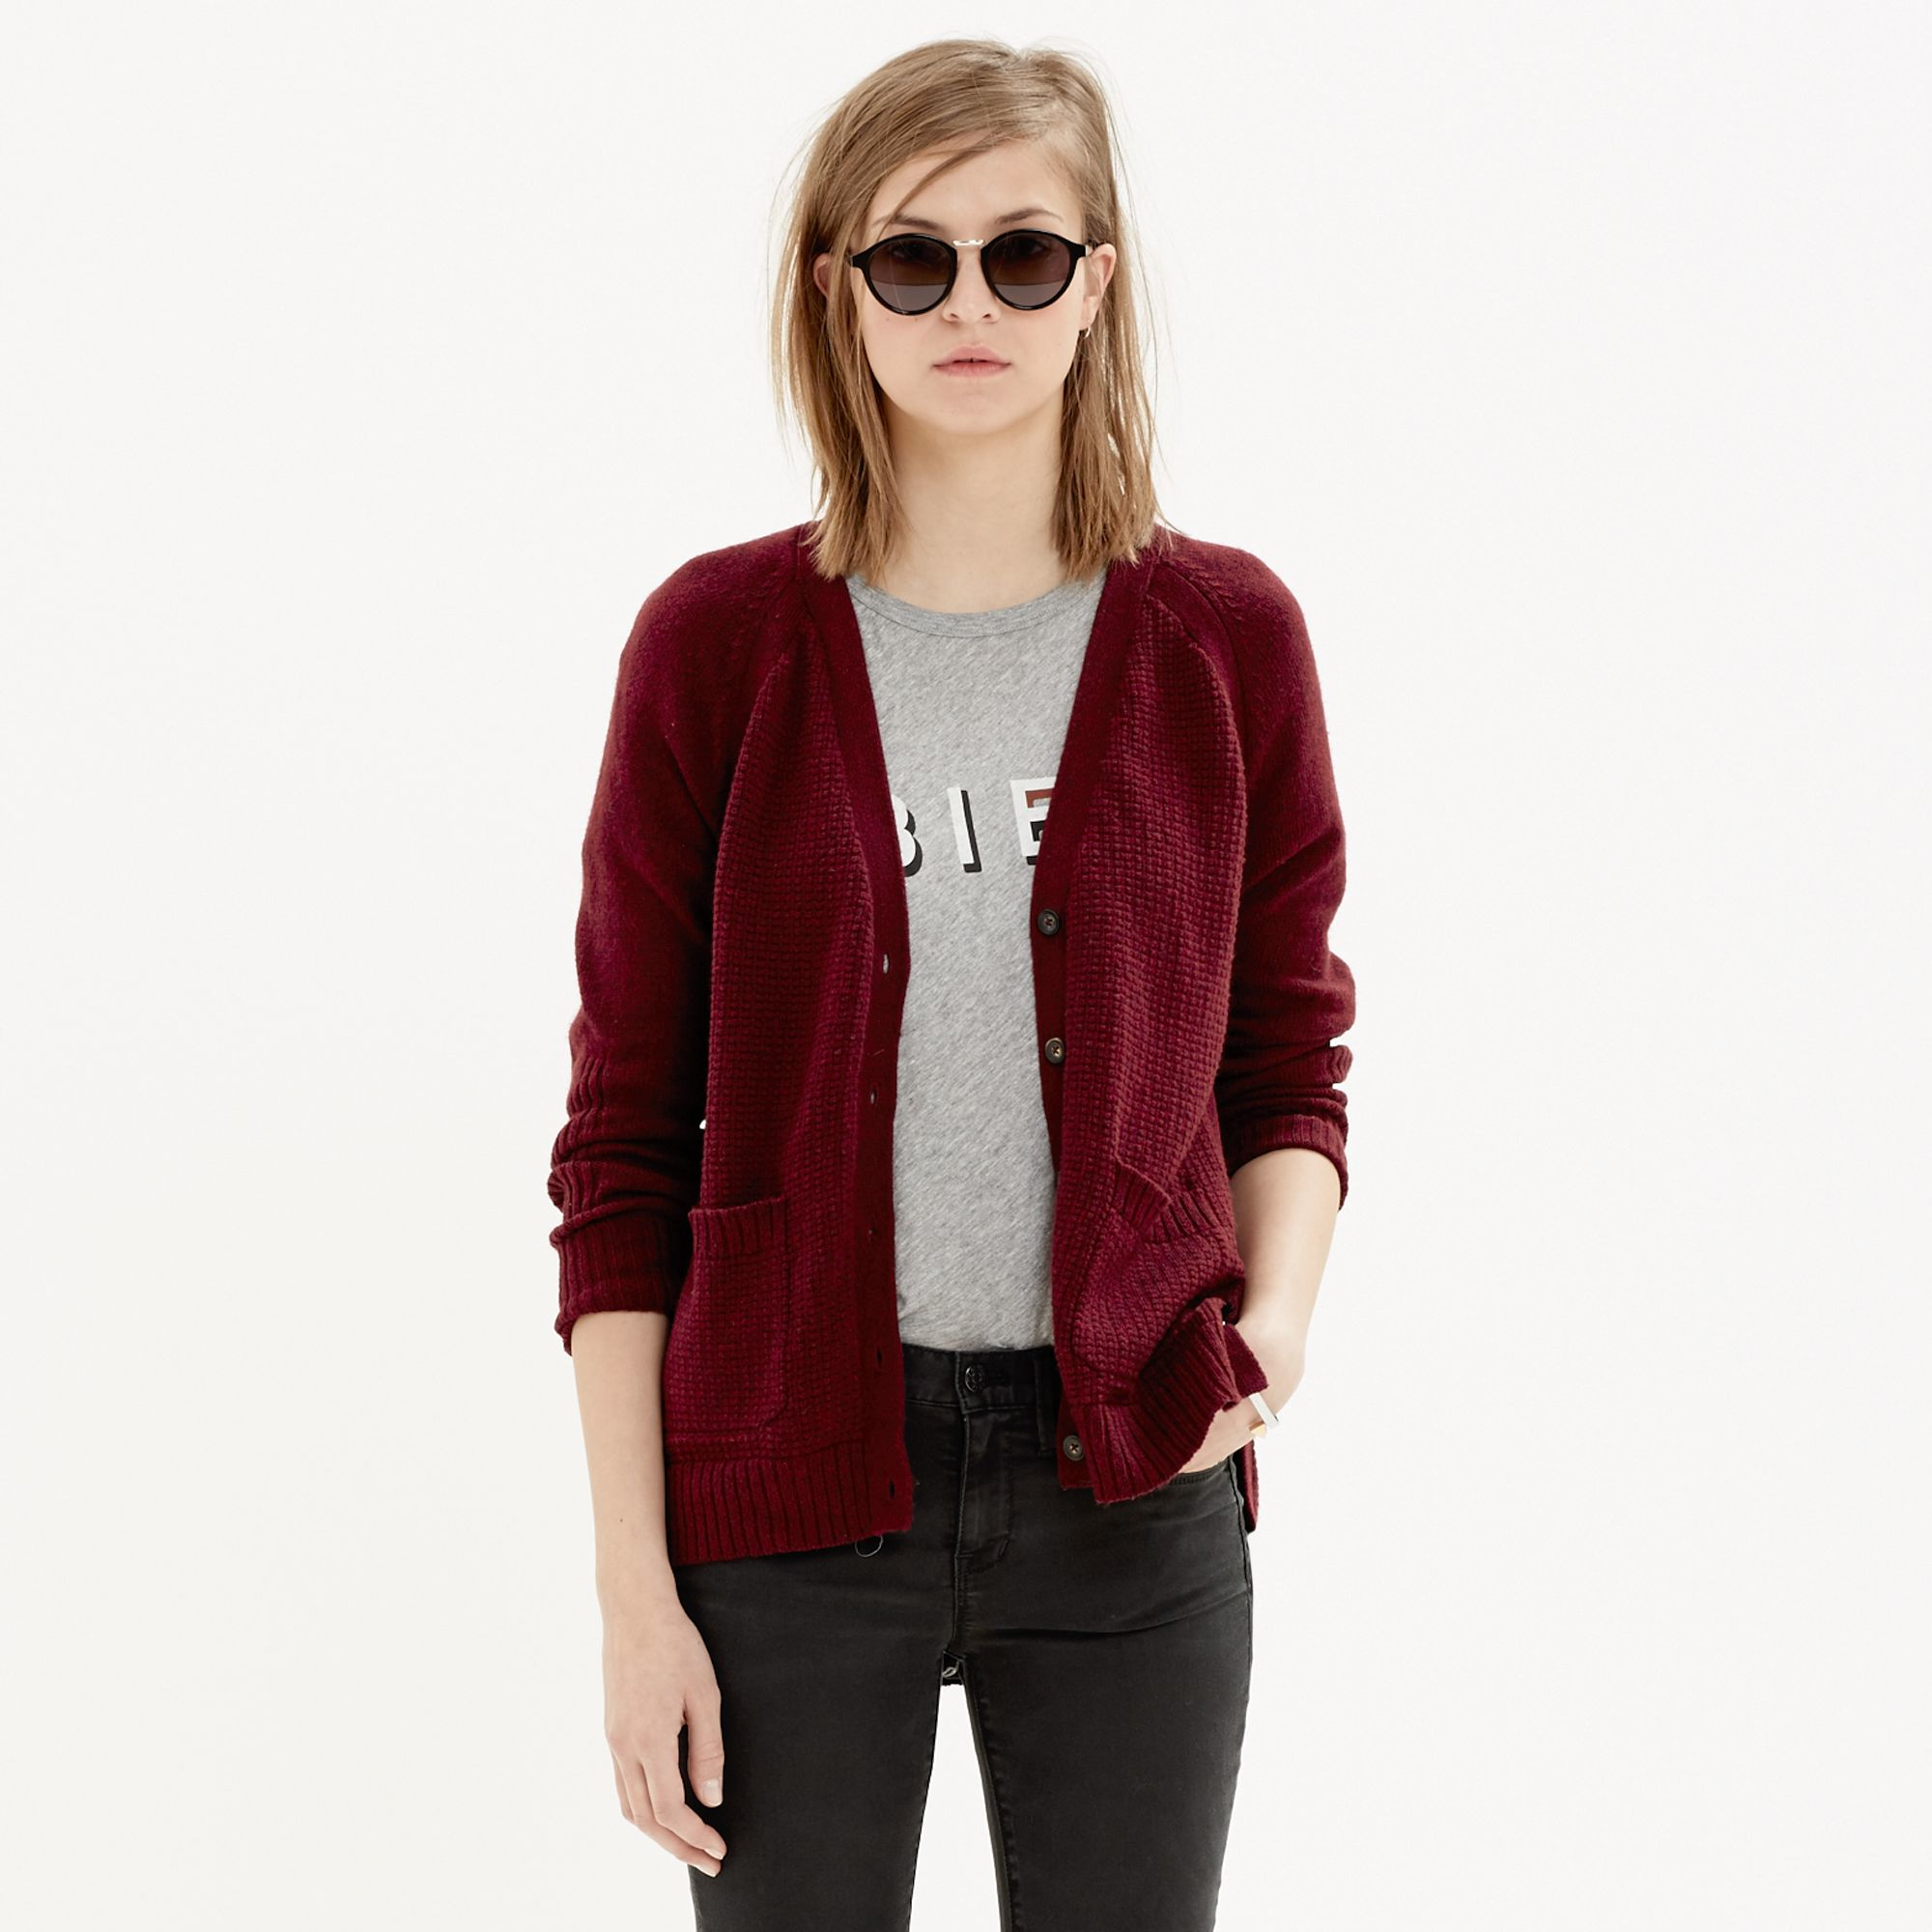 Madewell Texturework Cardigan in Red | Lyst